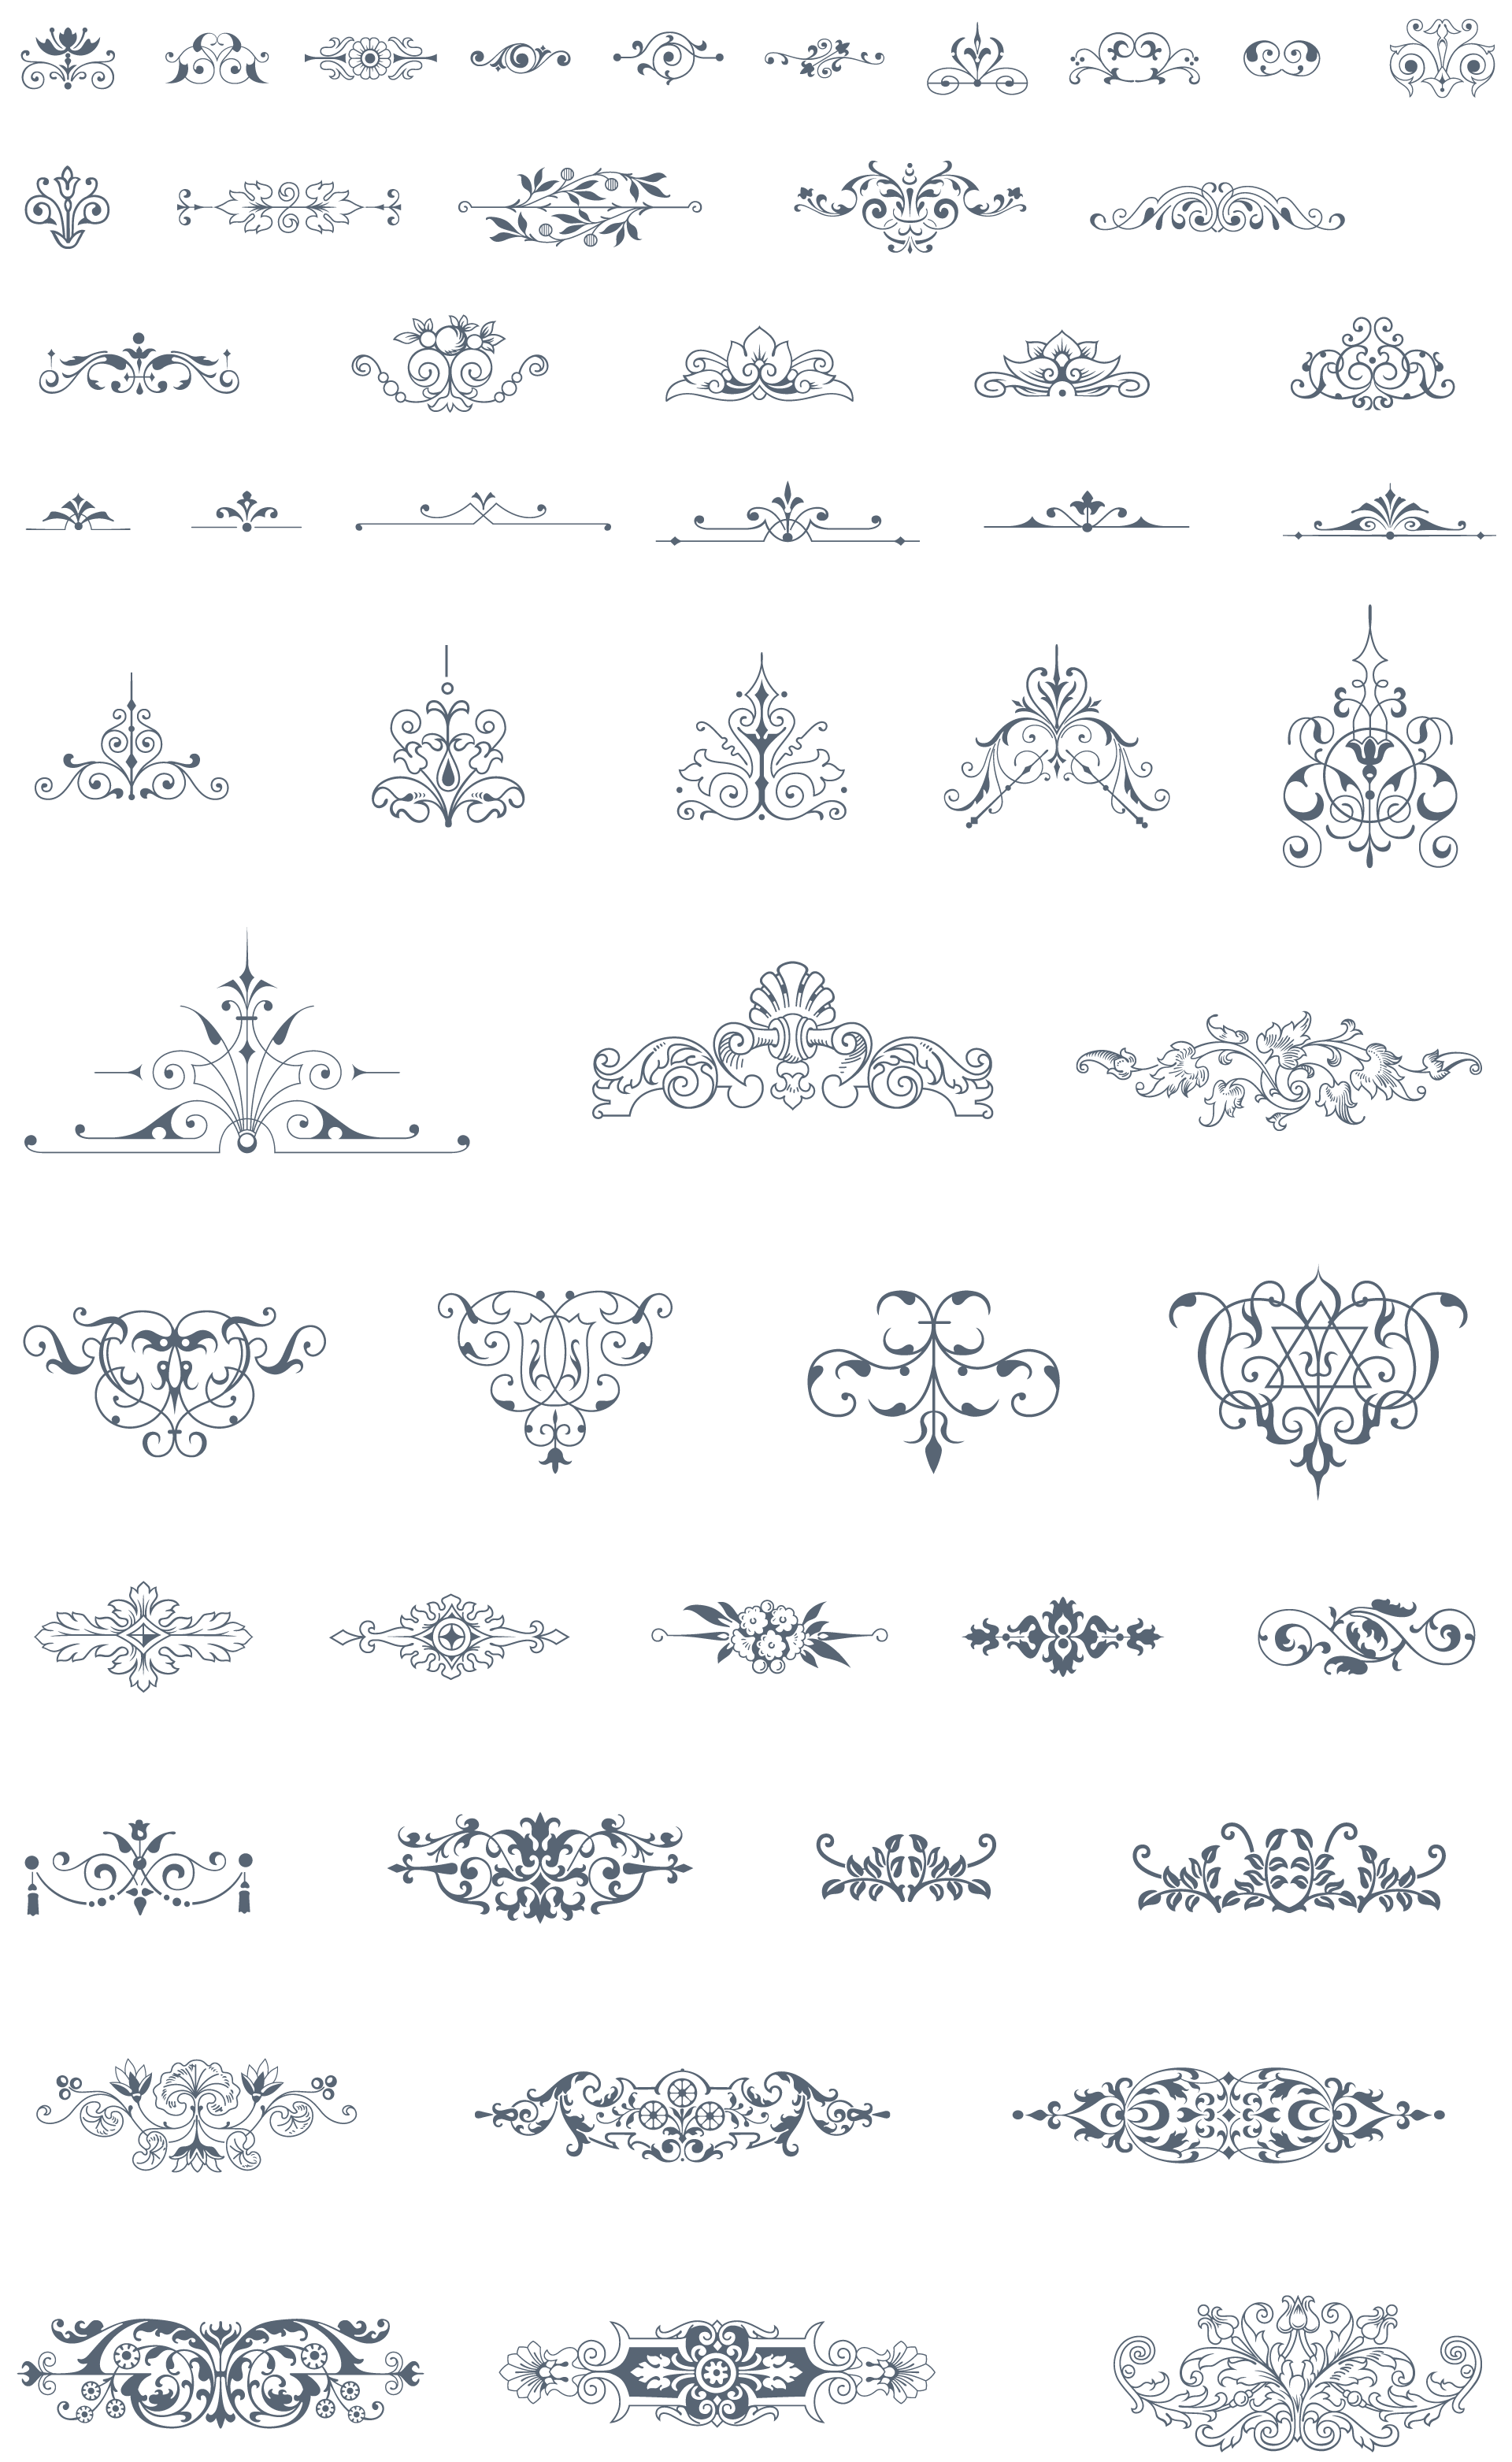 Vintage elements vector png. Essential pack ornaments decorative